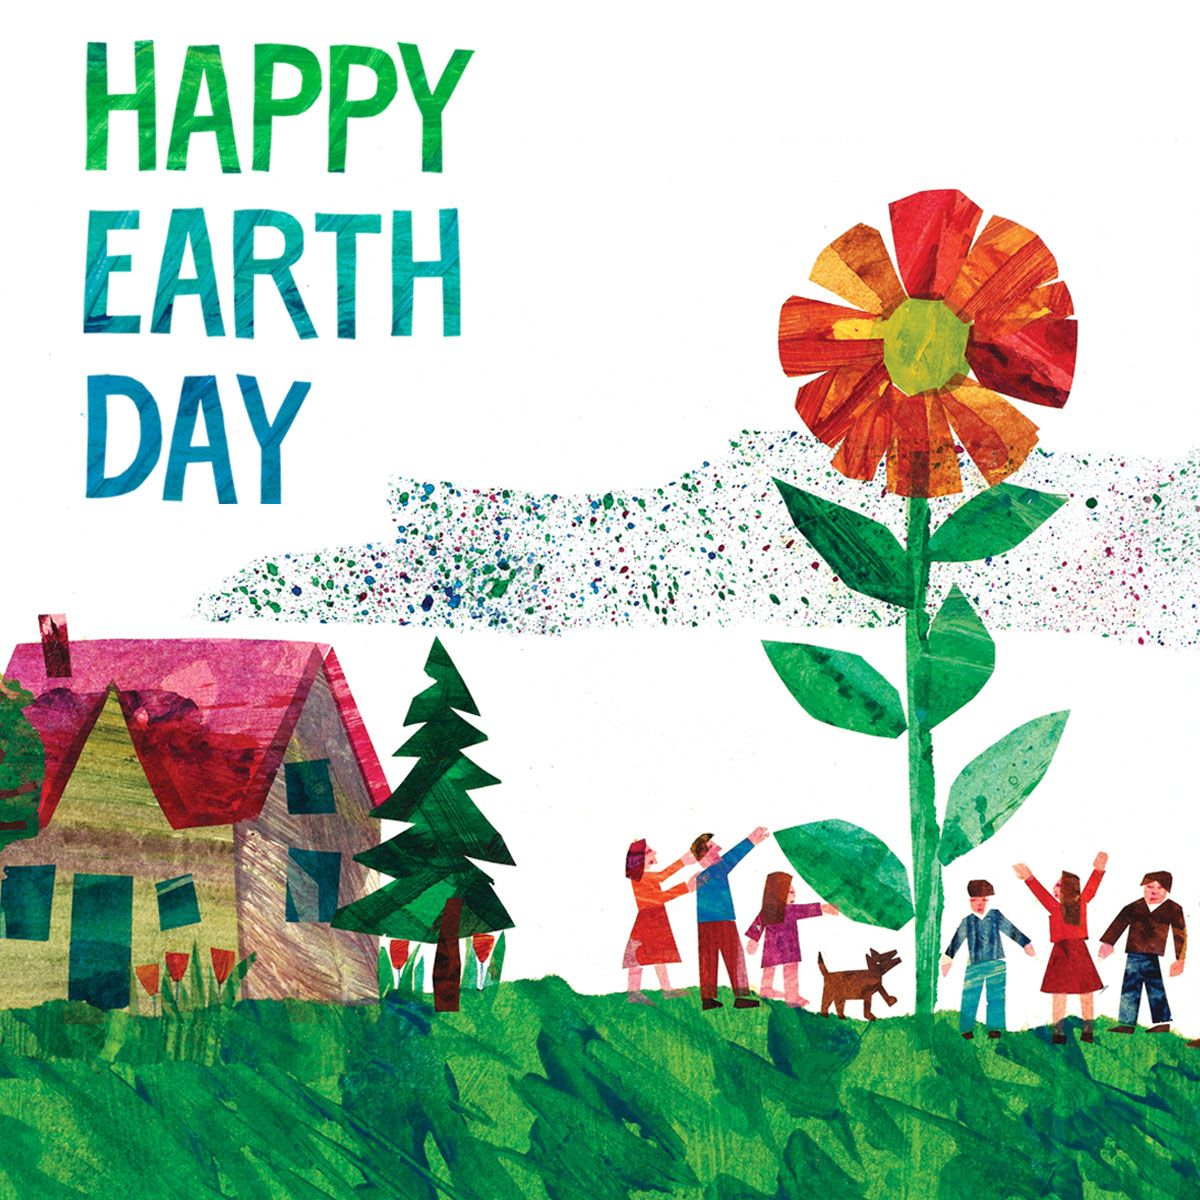 Happy Earth Day Everyone Take Some Time Today To Enjoy Nature And Keep The Earth Clean What